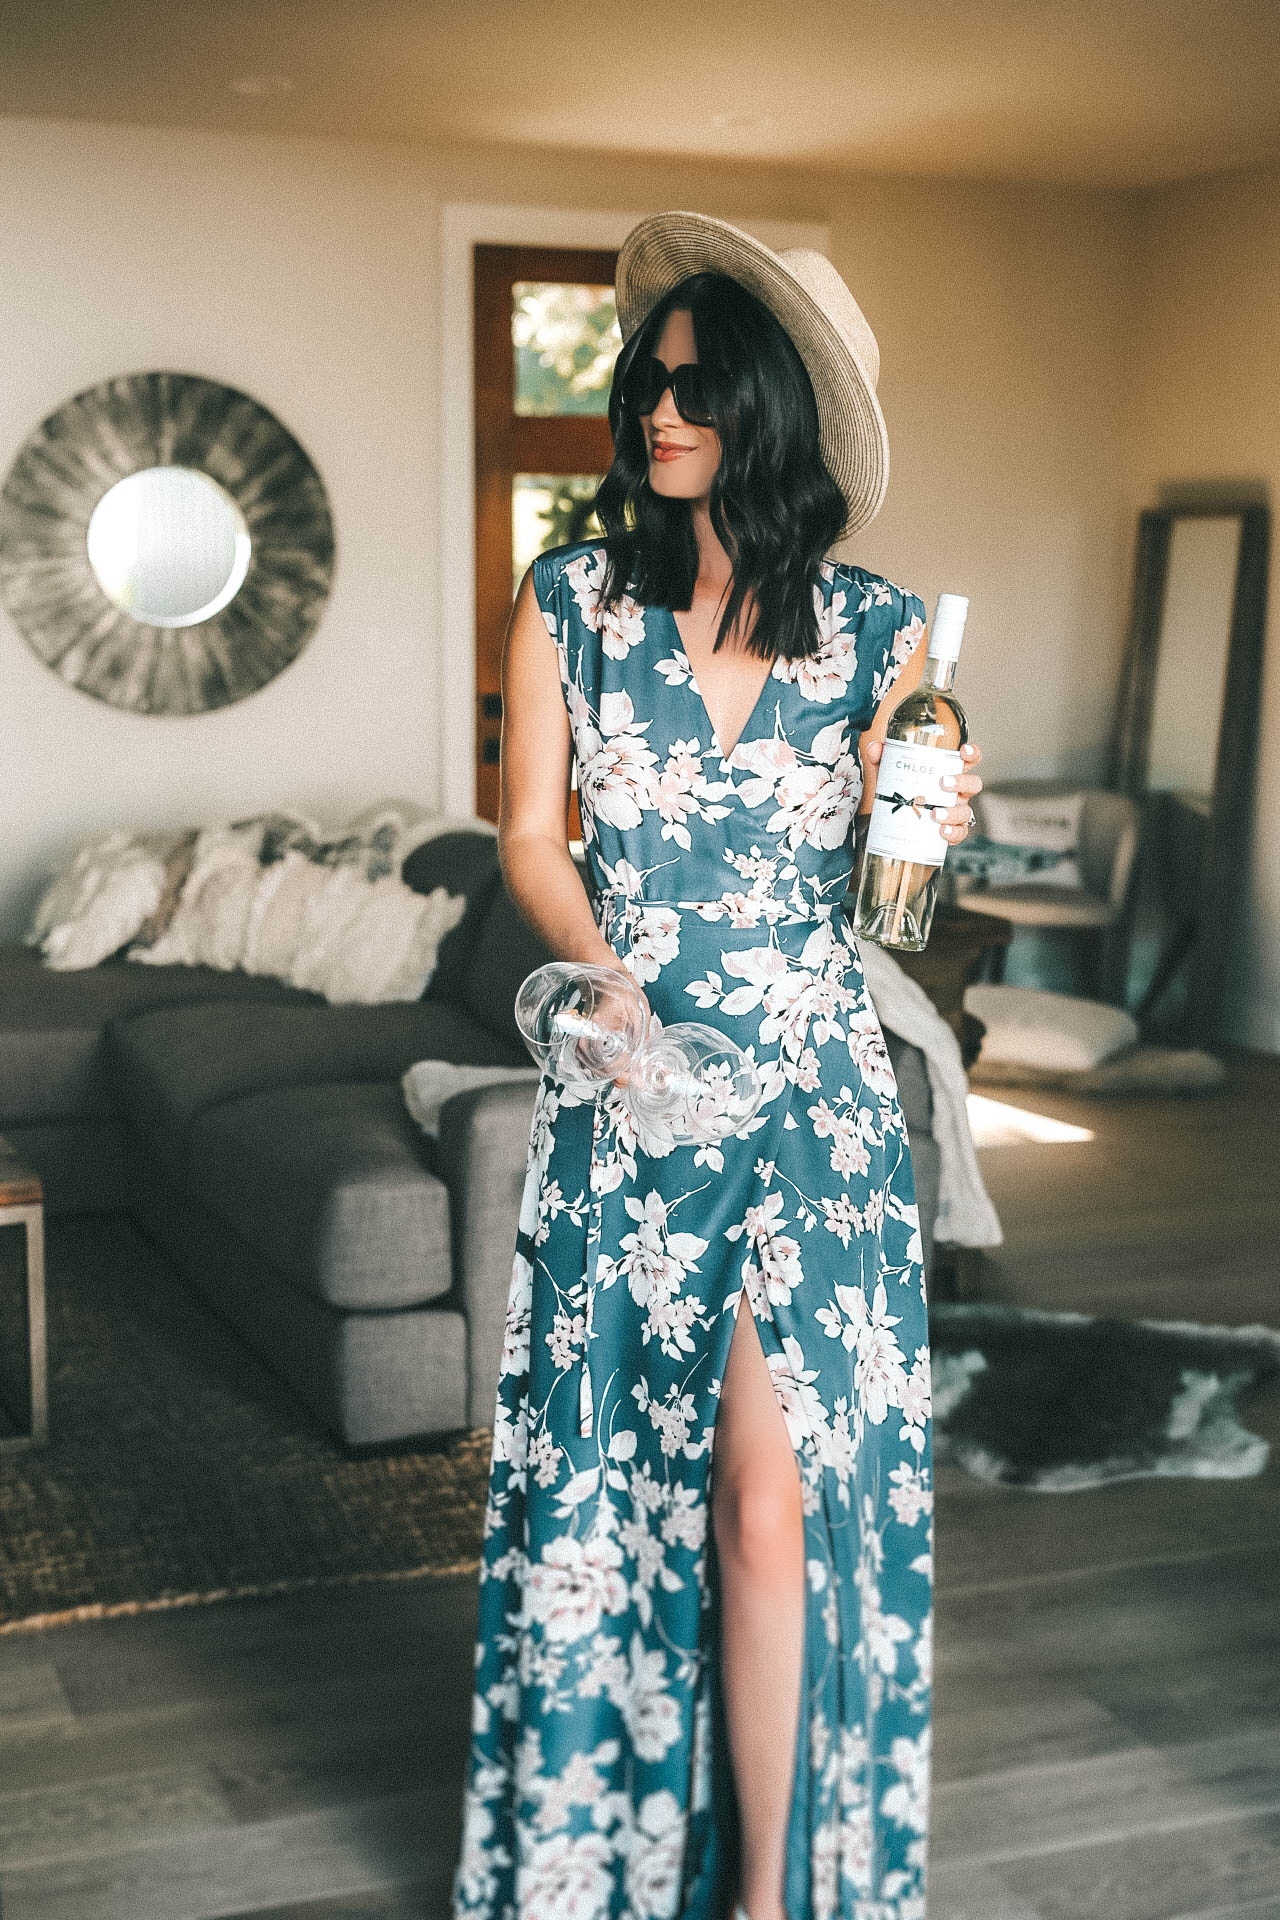 Celebrating Women in Film with Chloe Wine Collection by popular Austin life and style blog, Dressed to Kill: image of a woman in a blue floral dress and straw fedora hat holding a bottle of Chloe pinot grigio and a wine glass.